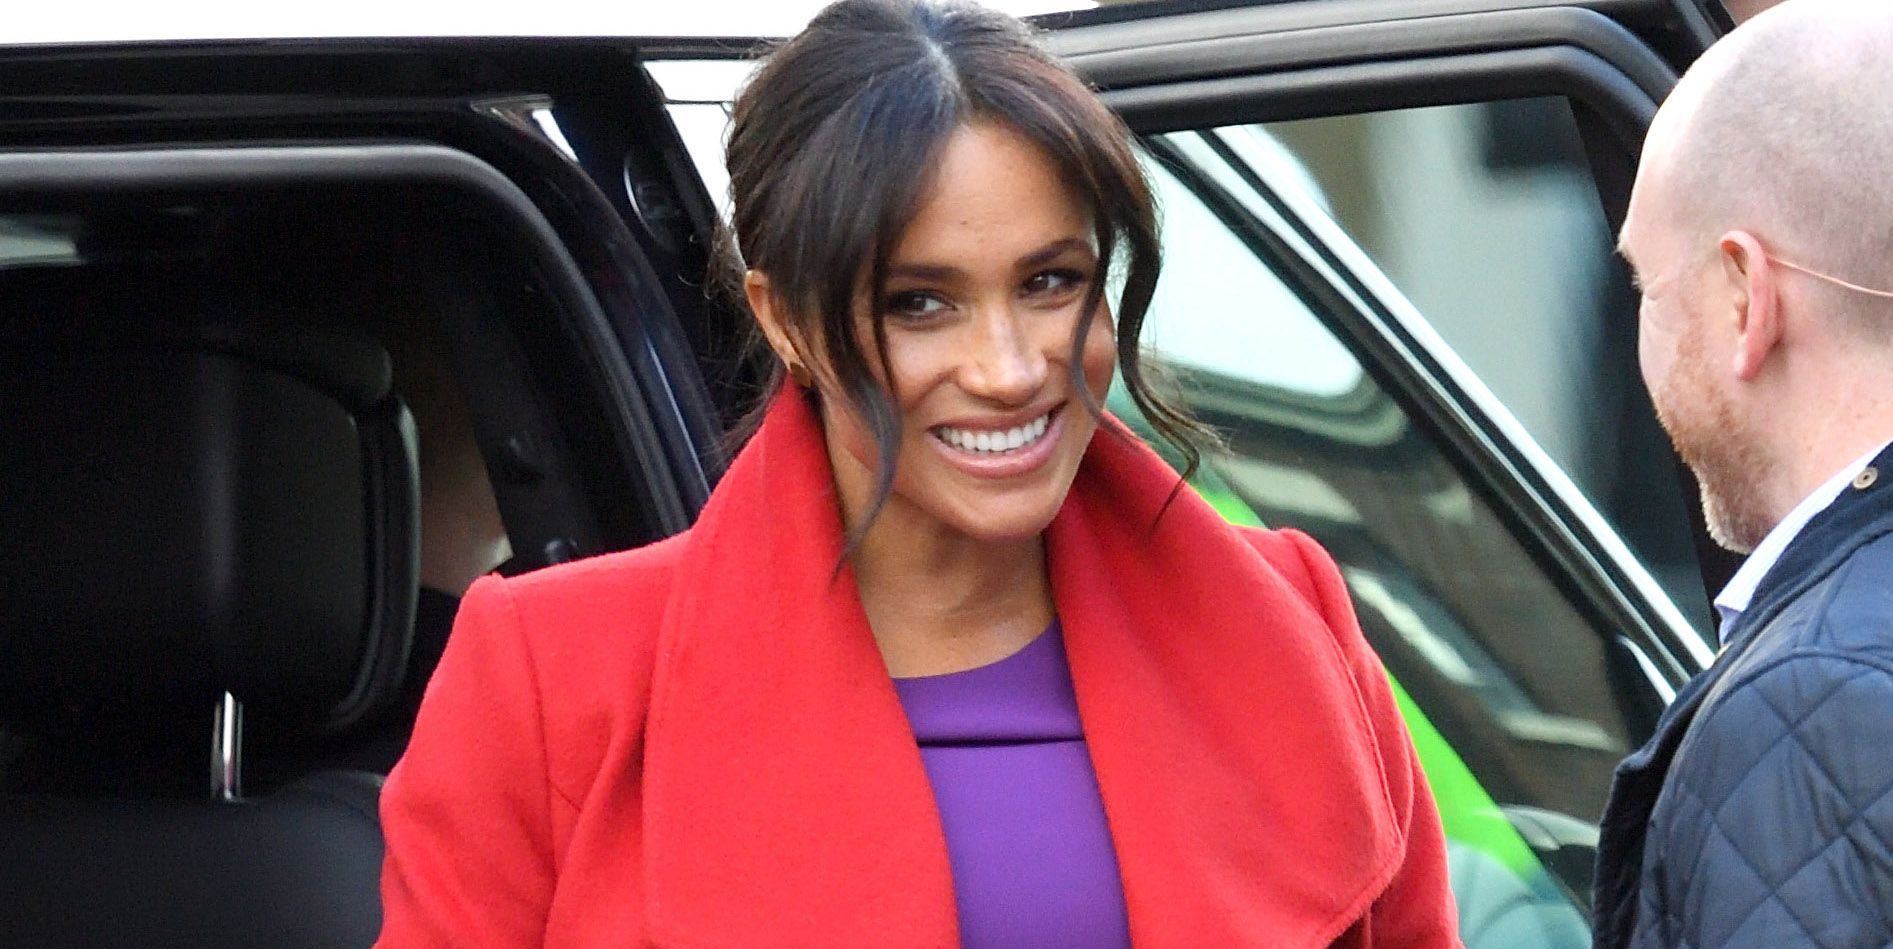 """A Woman Called Meghan Markle a """"Fat Lady"""" and She Had the Most Perfect Reaction"""